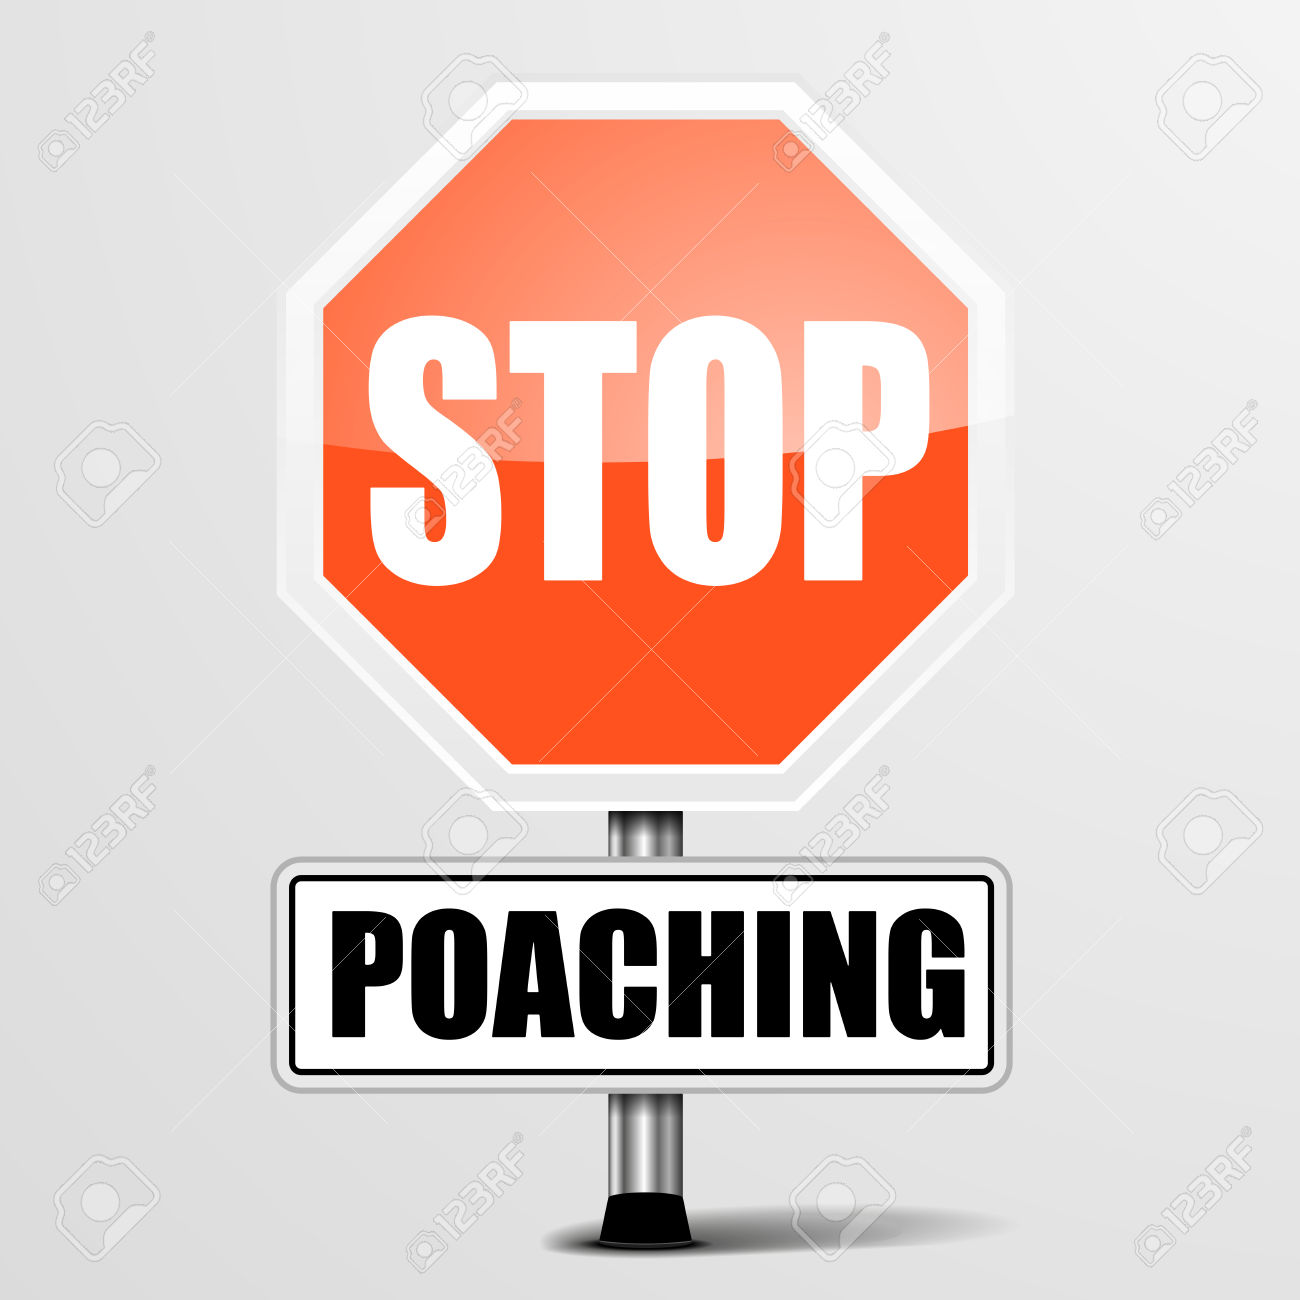 Detailed Illustration Of A Red Stop Poaching Sign, Eps10 Vector.